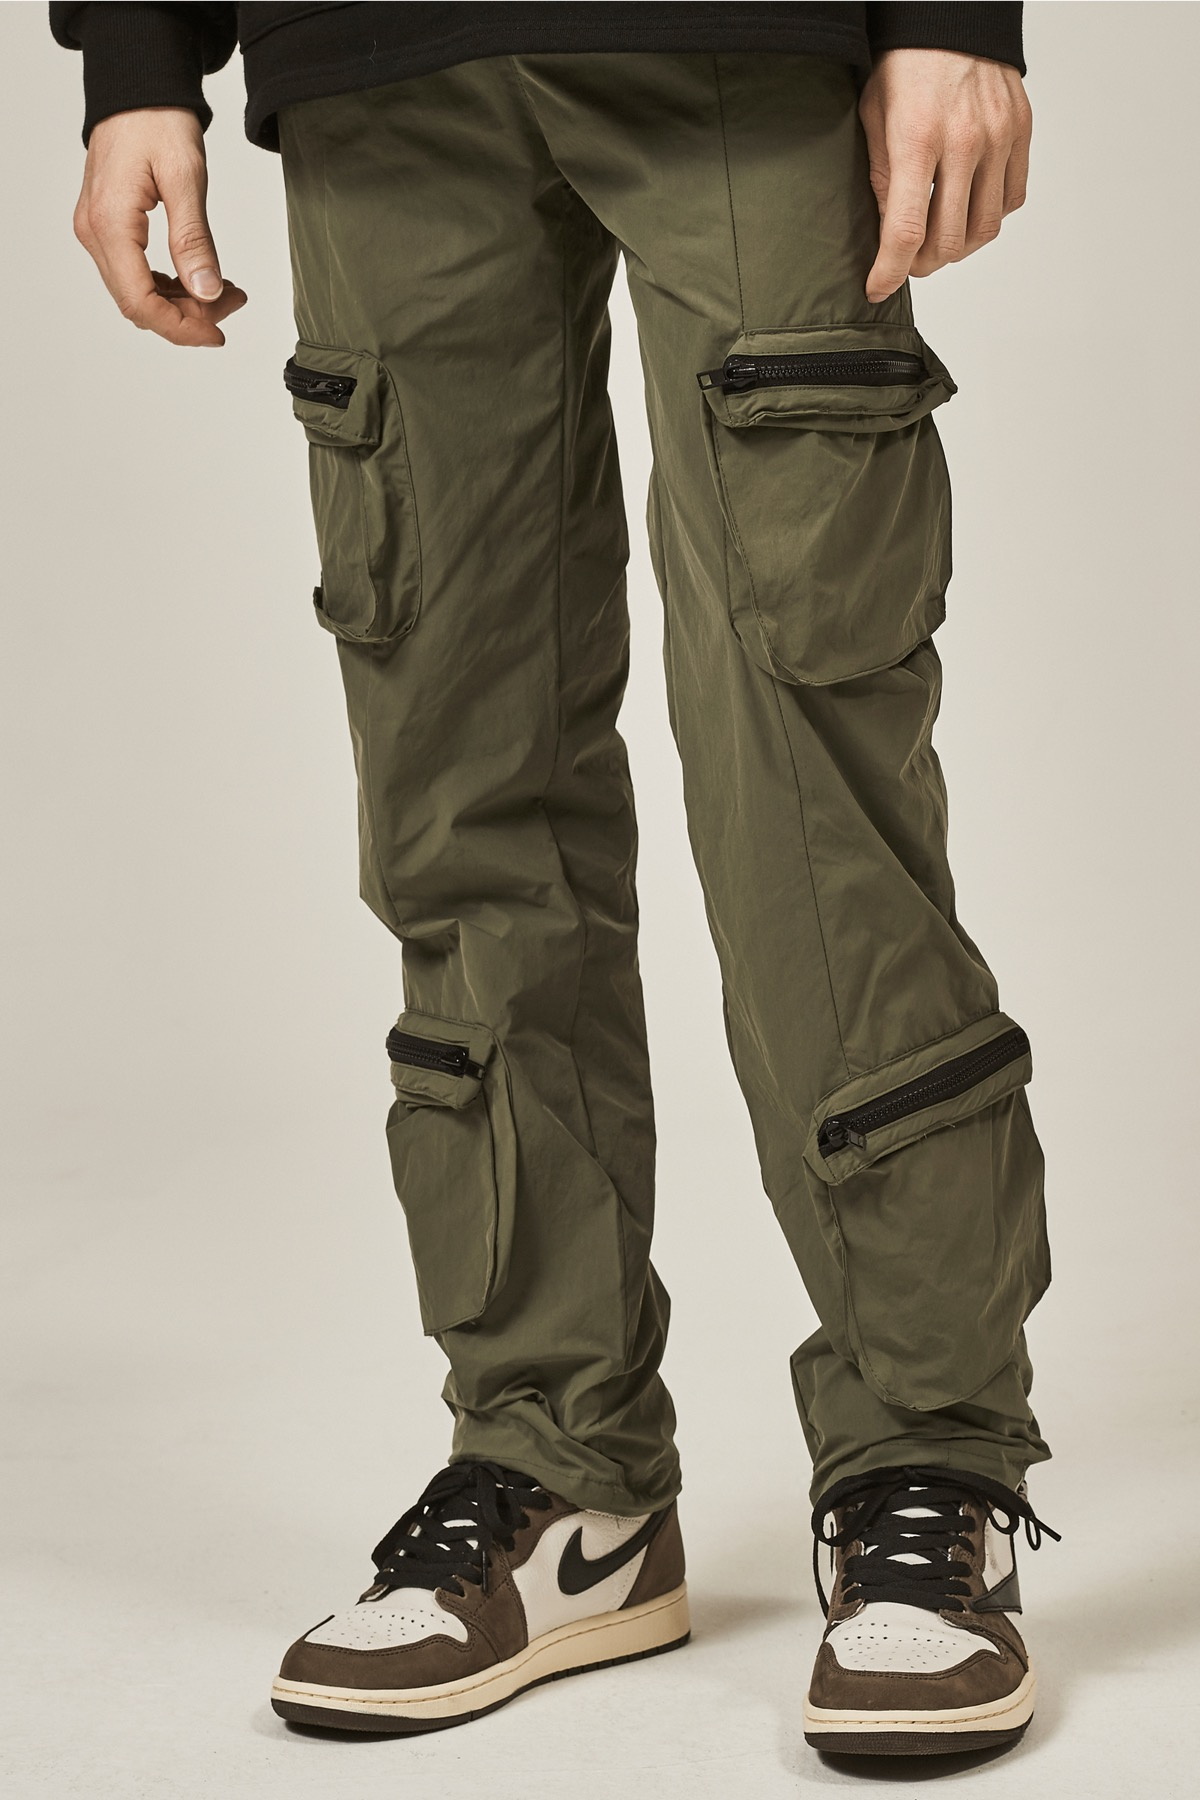 KHAKI 4 POCKET CARGO STRING PANTS